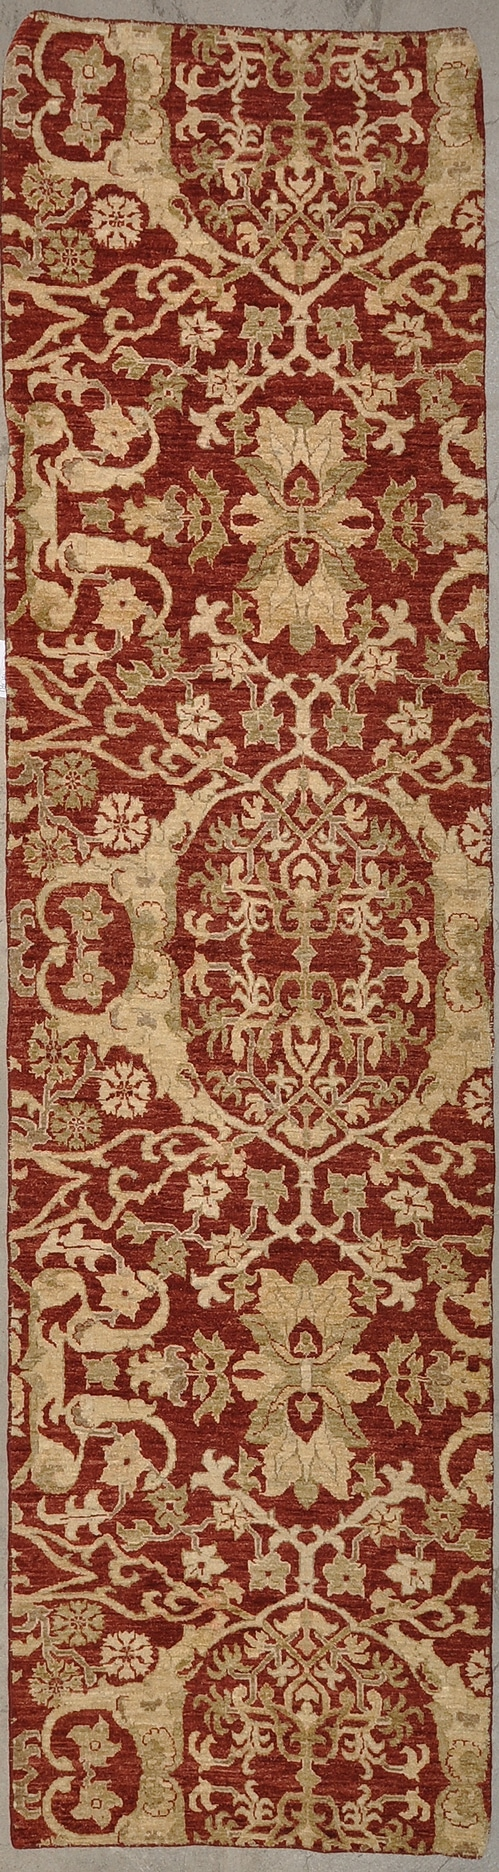 Ziegler Oushak rugs and more oriental carpet 33139-